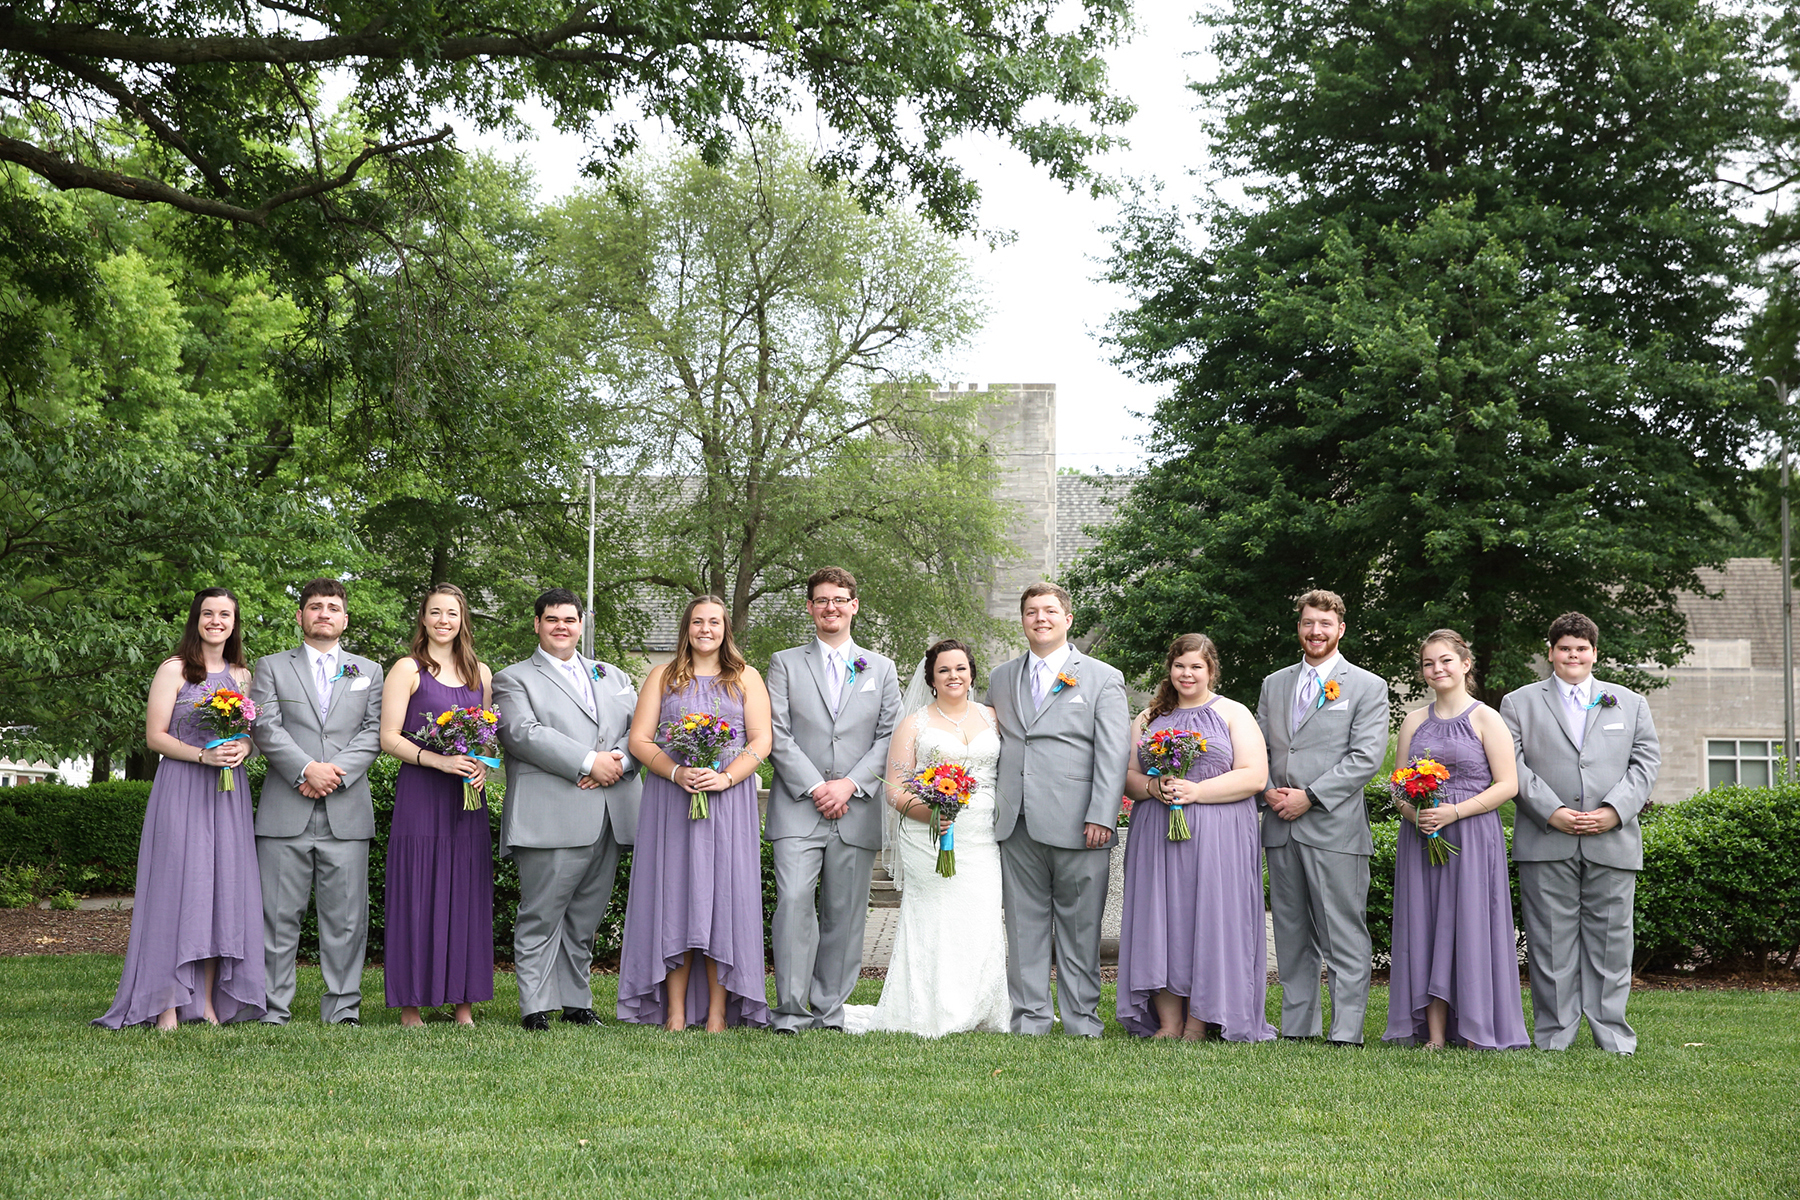 wedding party group in purple dresses and gray suits